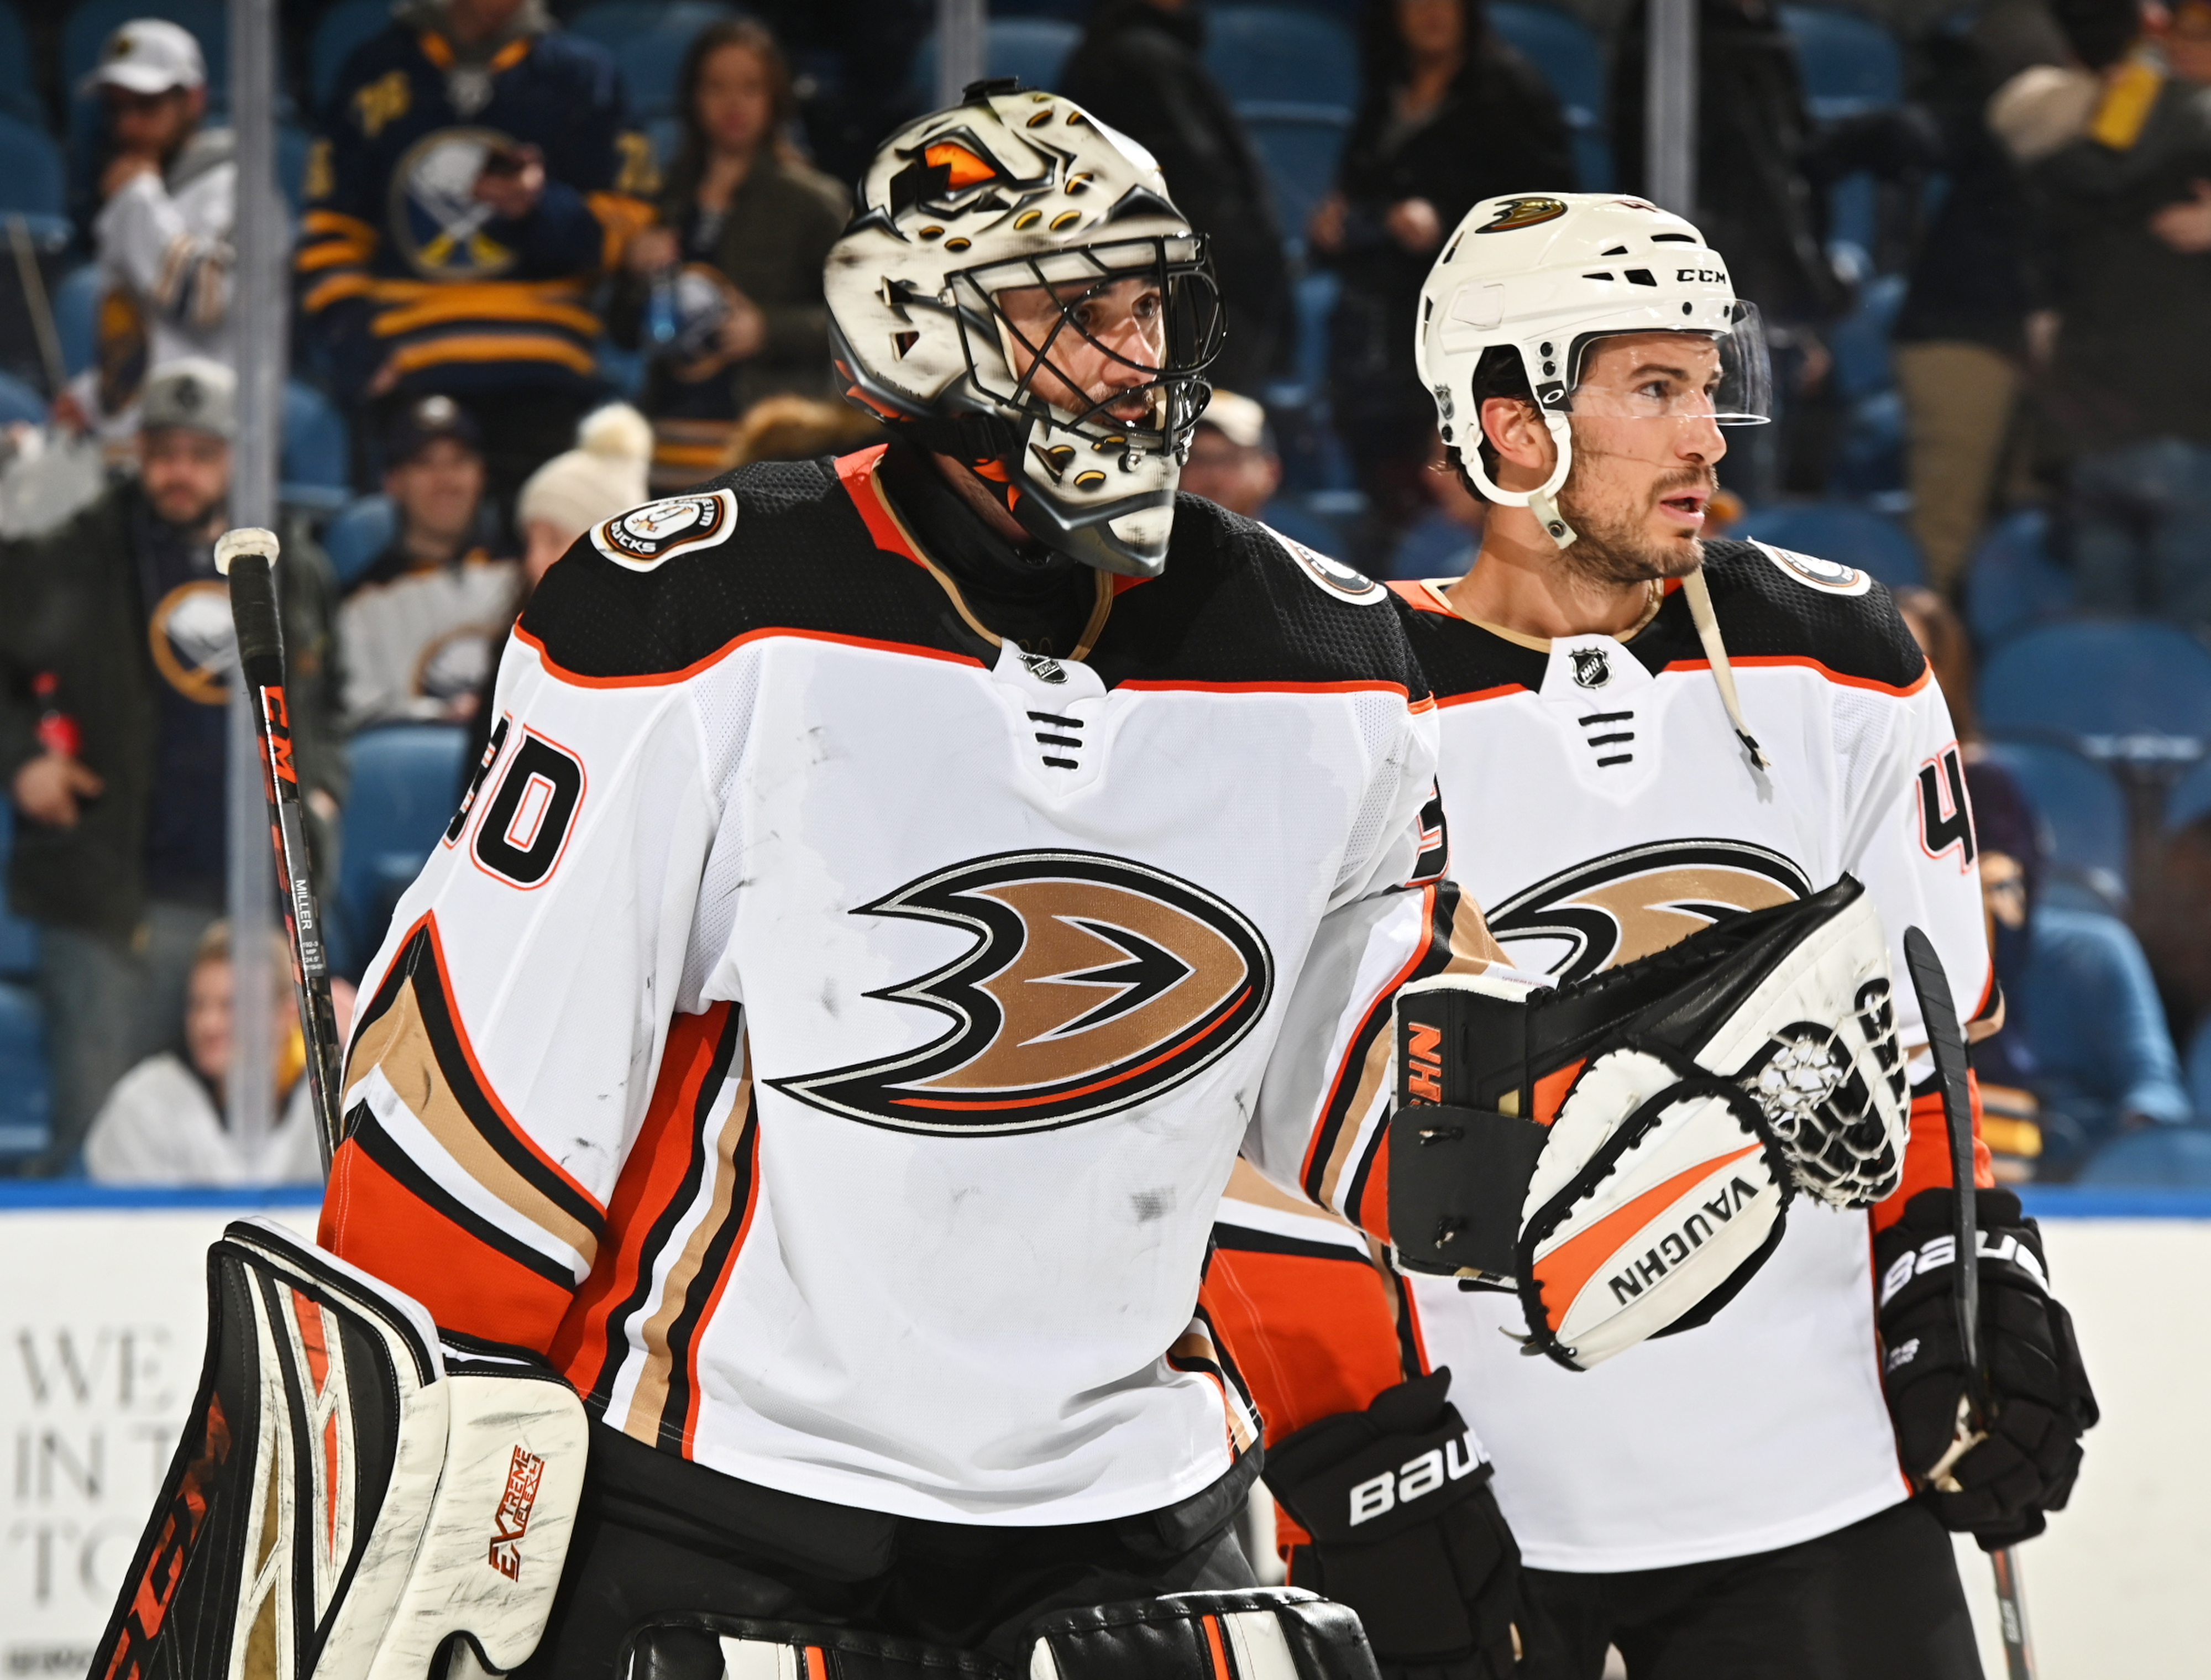 BUFFALO, NY - FEBRUARY 9: Michael Del Zotto #44 of the Anaheim Ducks congratulates Ryan Miller #30 following their 3-2 victory against the Buffalo Sabres an NHL game on February 9, 2020 at KeyBank Center in Buffalo, New York.